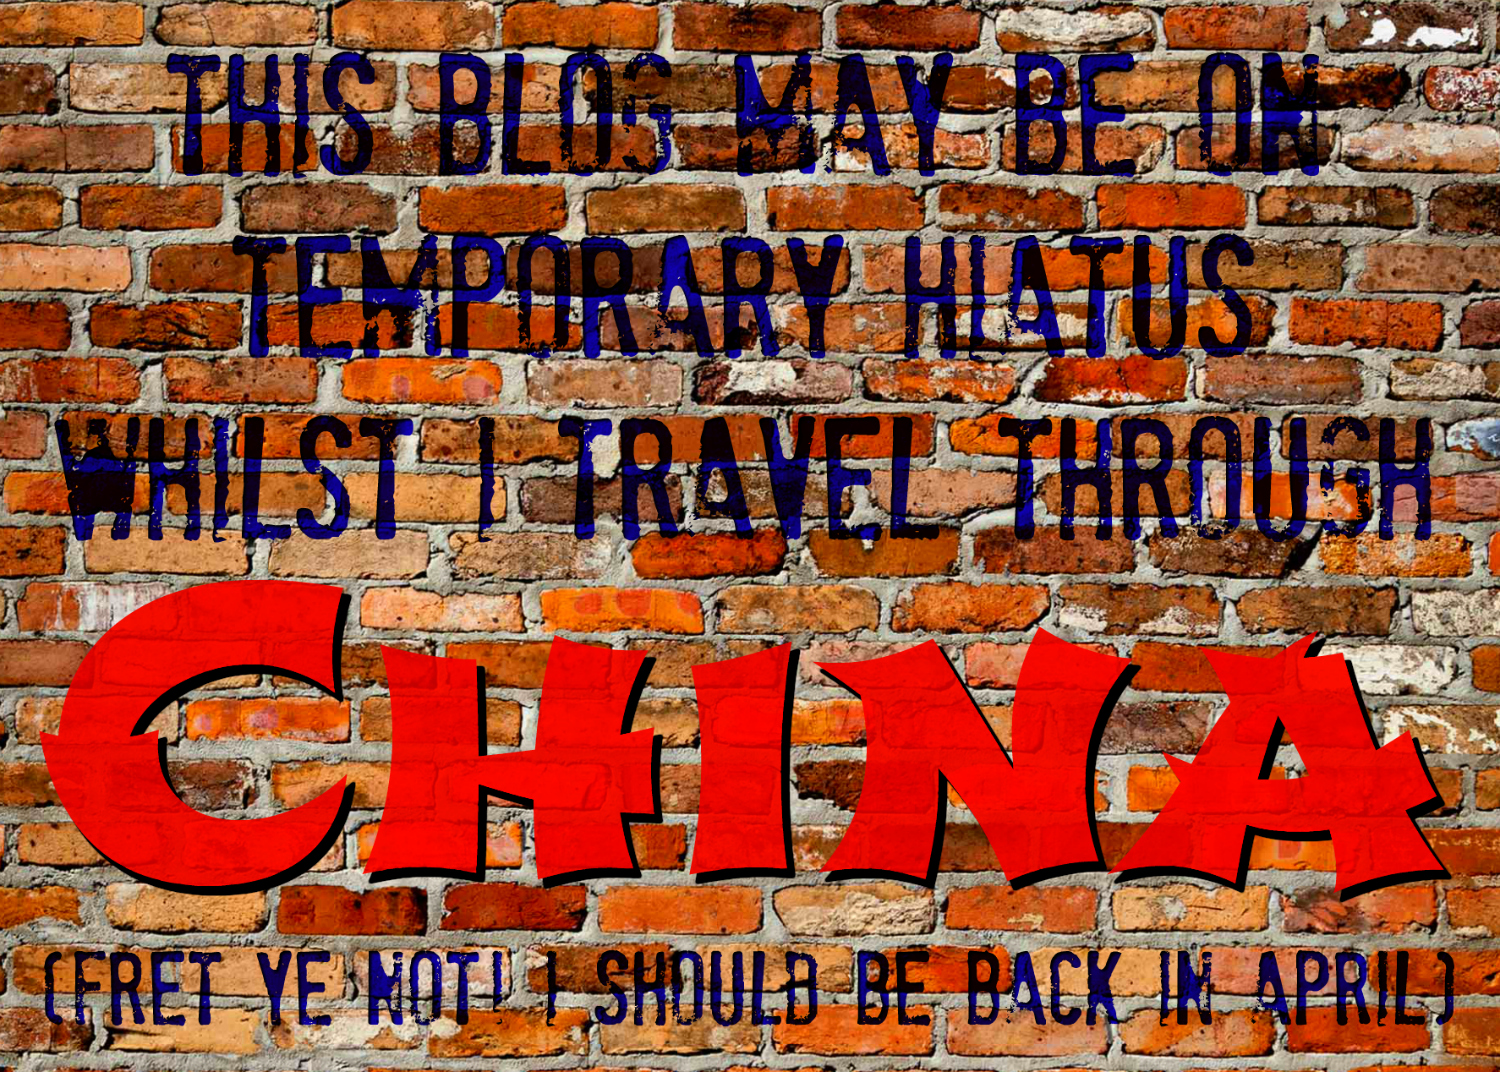 And now for a likely 3-week post hiatus as I head off to China